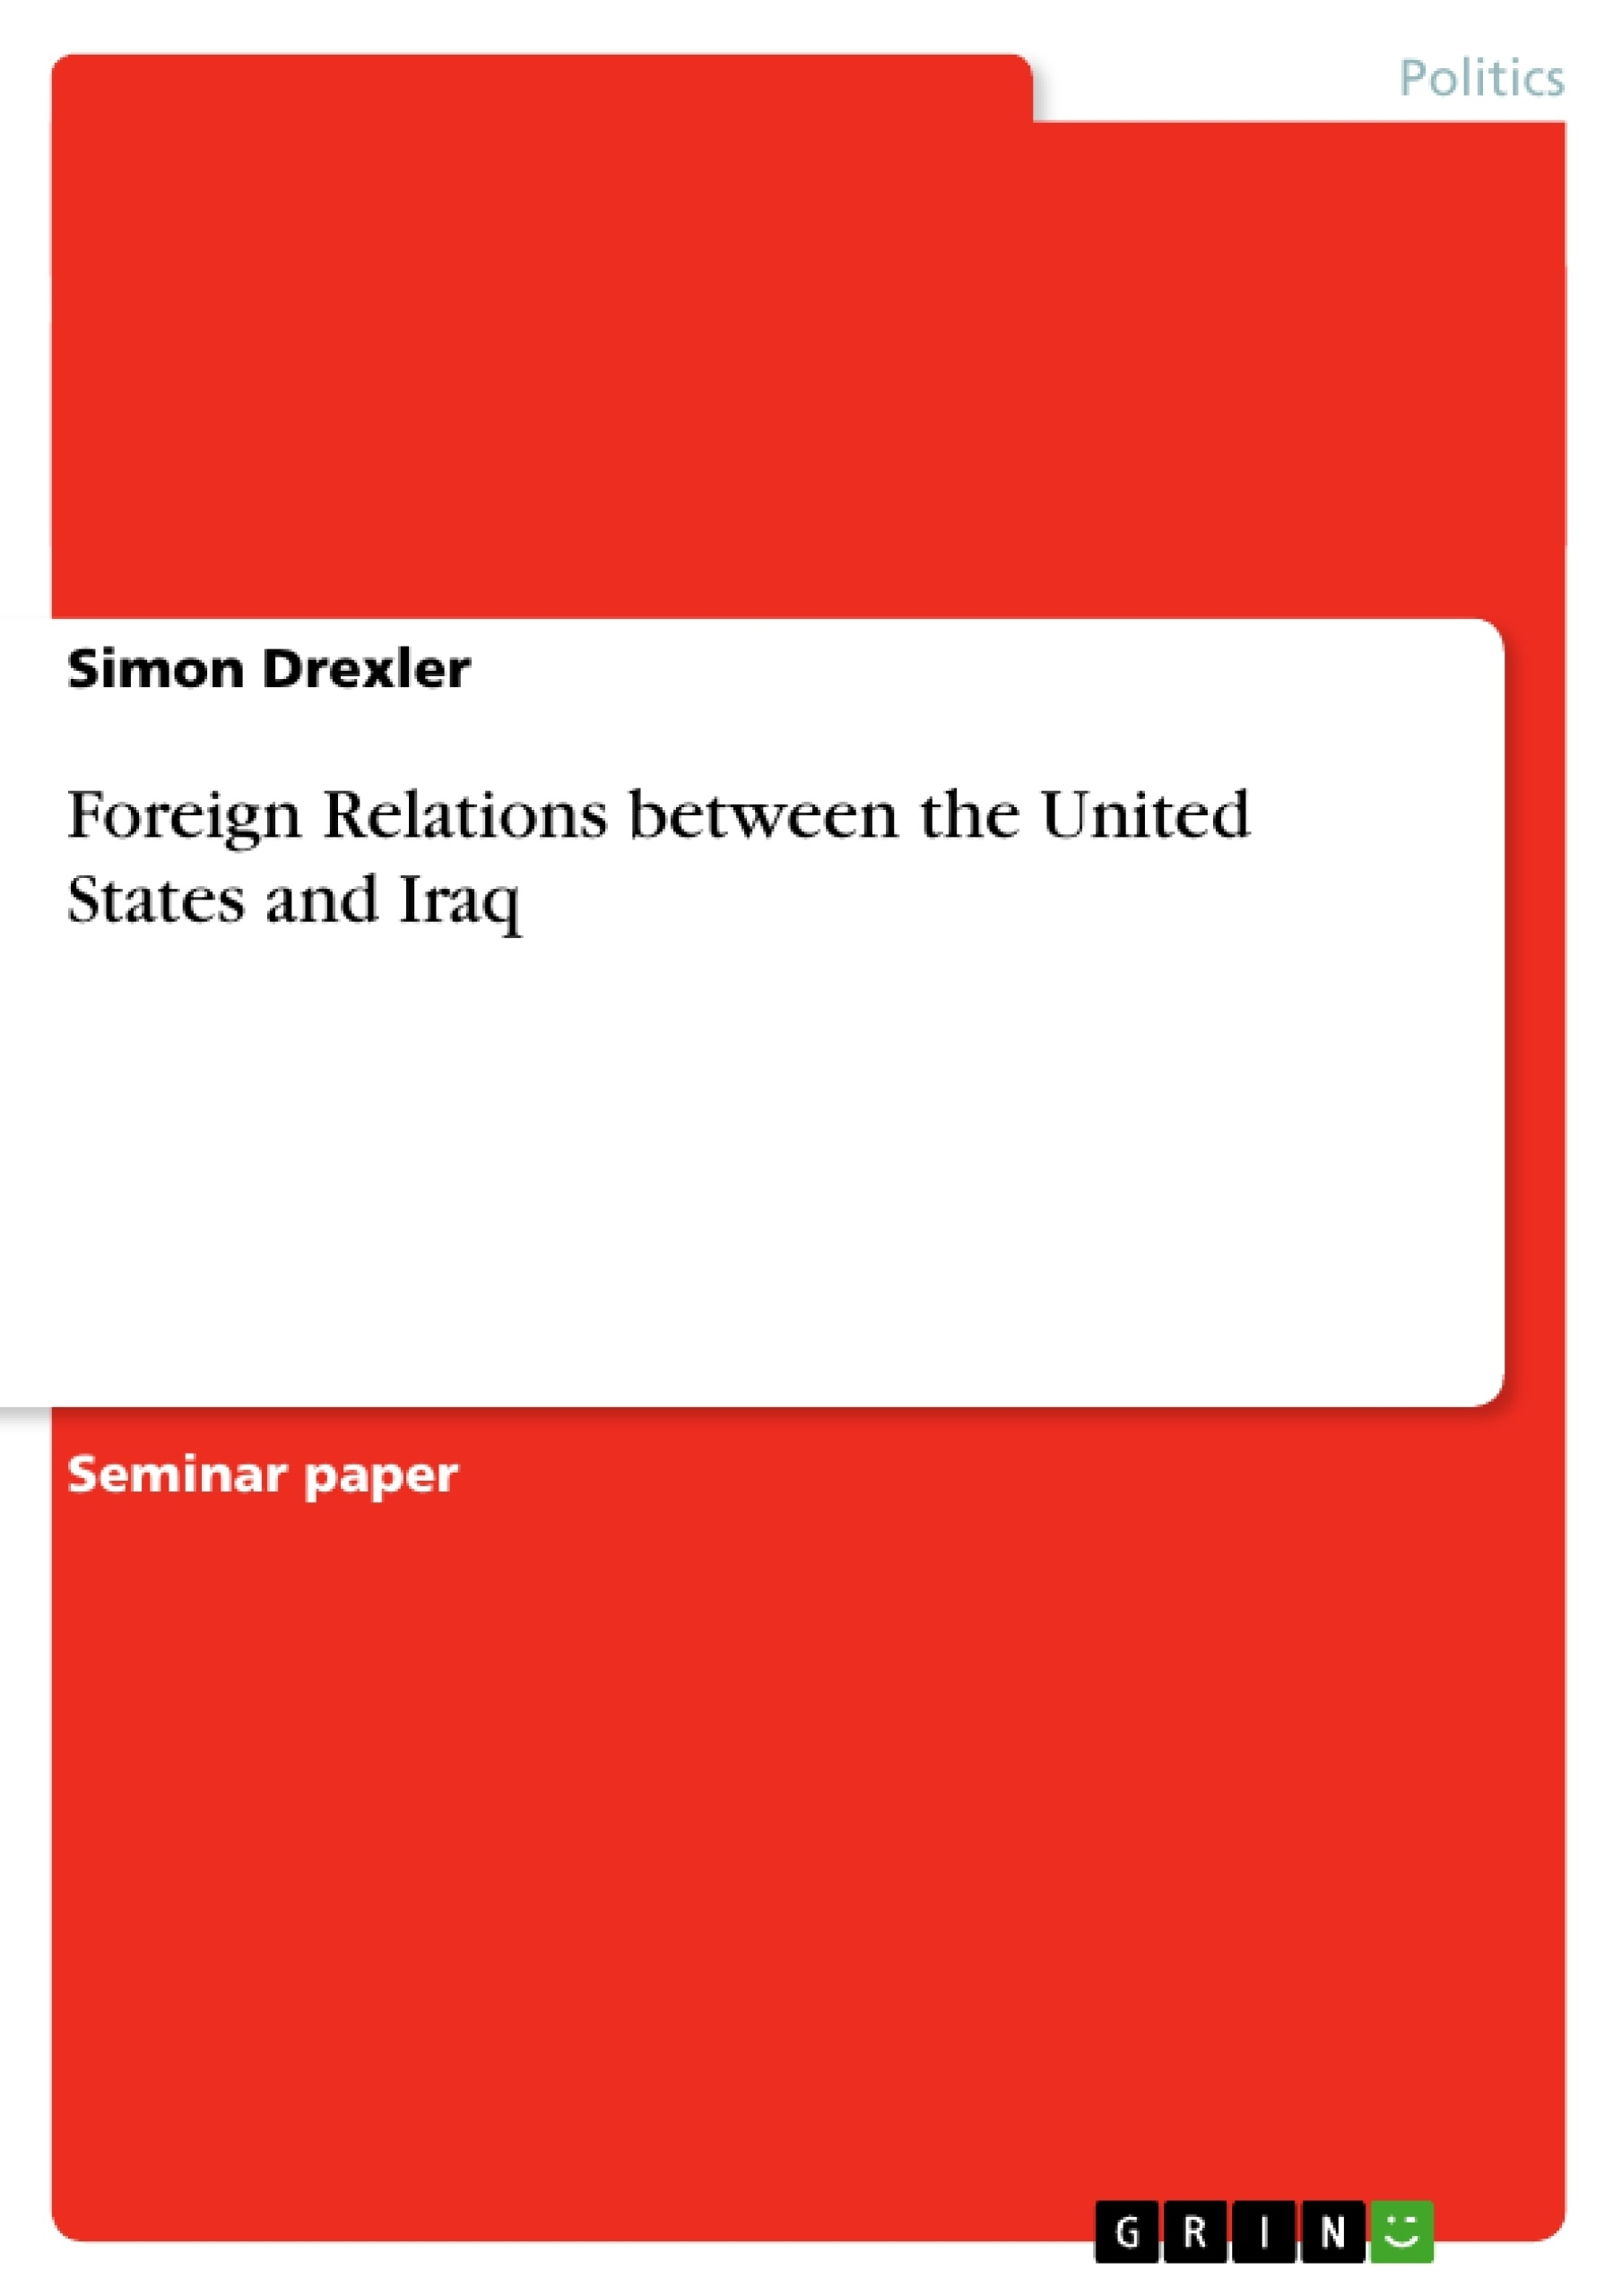 Title: Foreign Relations between the United States and Iraq